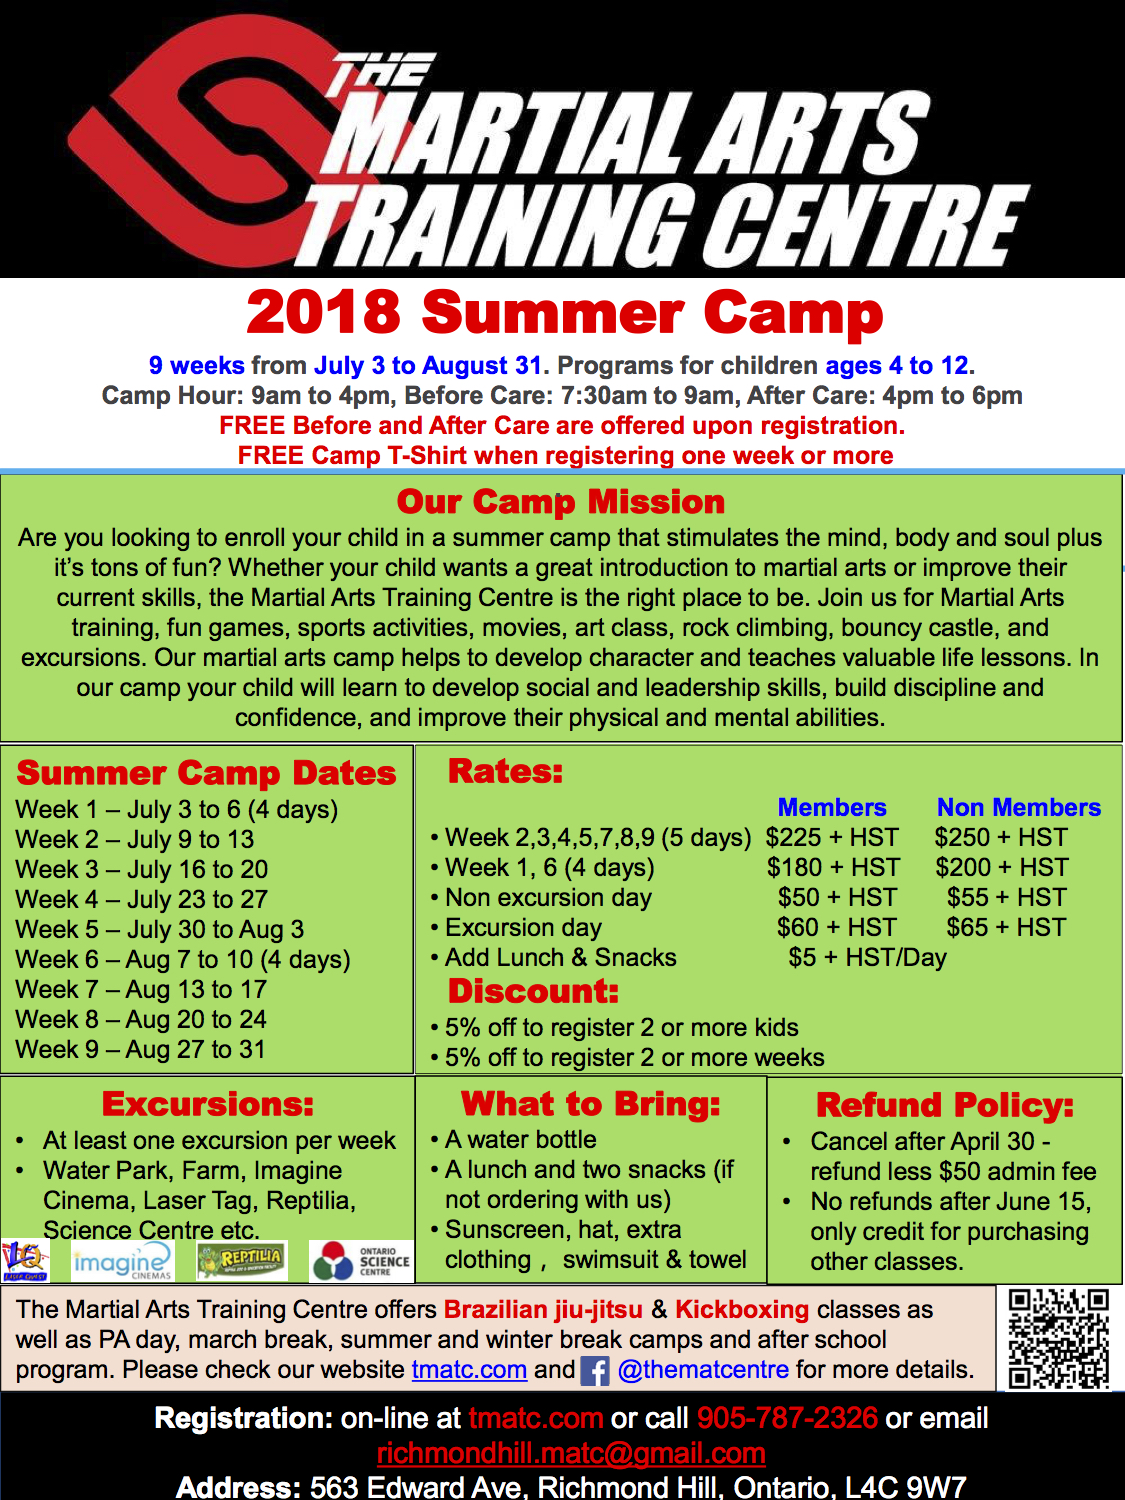 The martial arts training centre 2018 summer camp flyer 2 the the martial arts training centre 2018 summer camp flyer 2 publicscrutiny Image collections